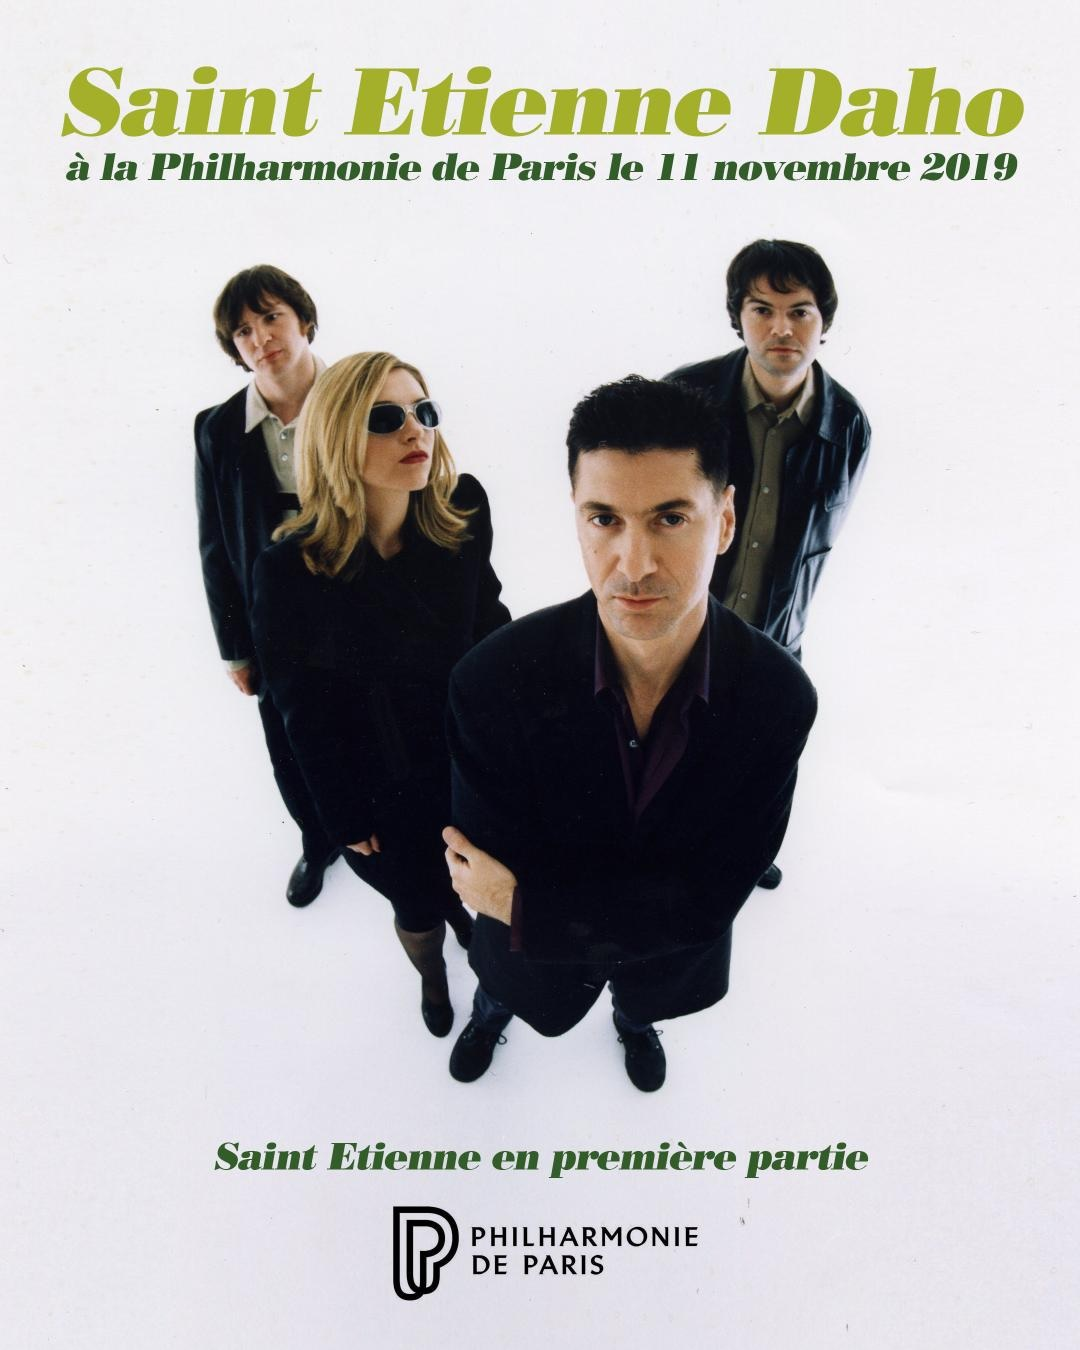 SSaint Etienne support Etienne Daho in Paris